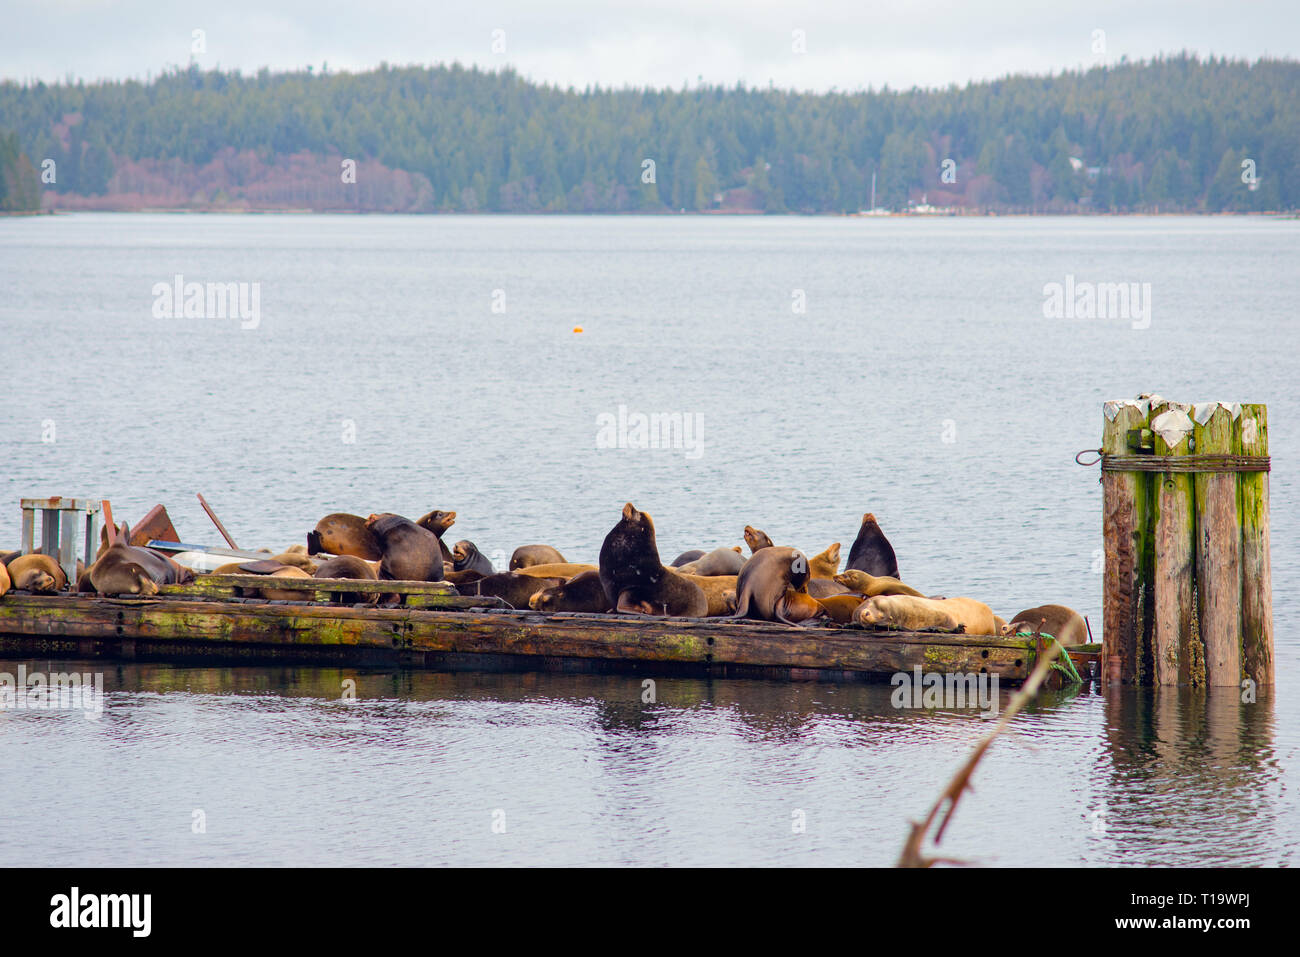 View of wild stellar sea lions basking in the sun by the ocean in Ucluelet, Vancouver Island, Canada - Stock Image